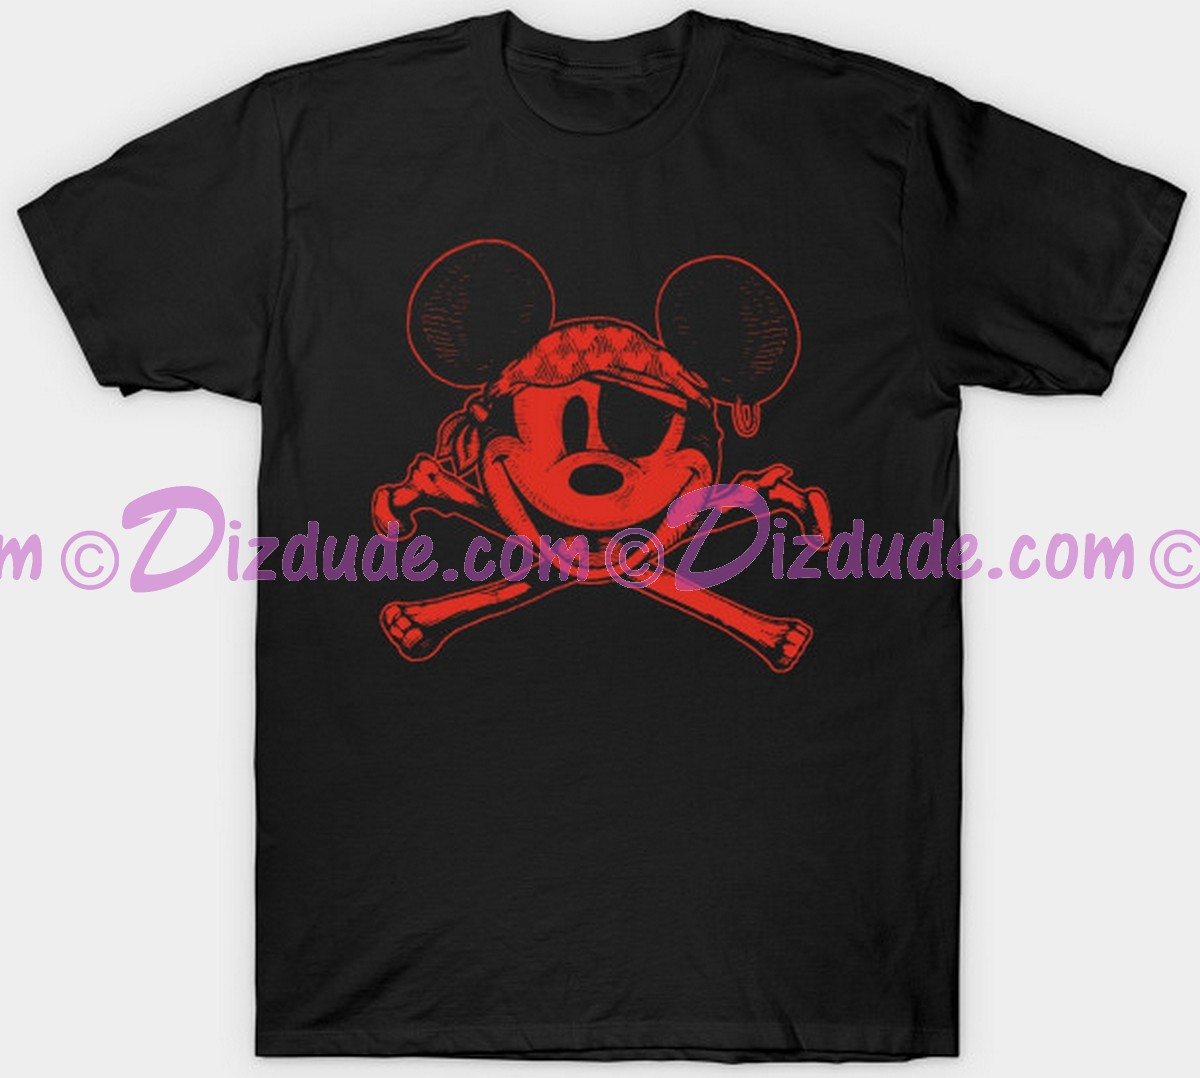 Vintage Disney Pirate of the Caribbean Pirate Mickey Mouse and Cross Bones T-shirt